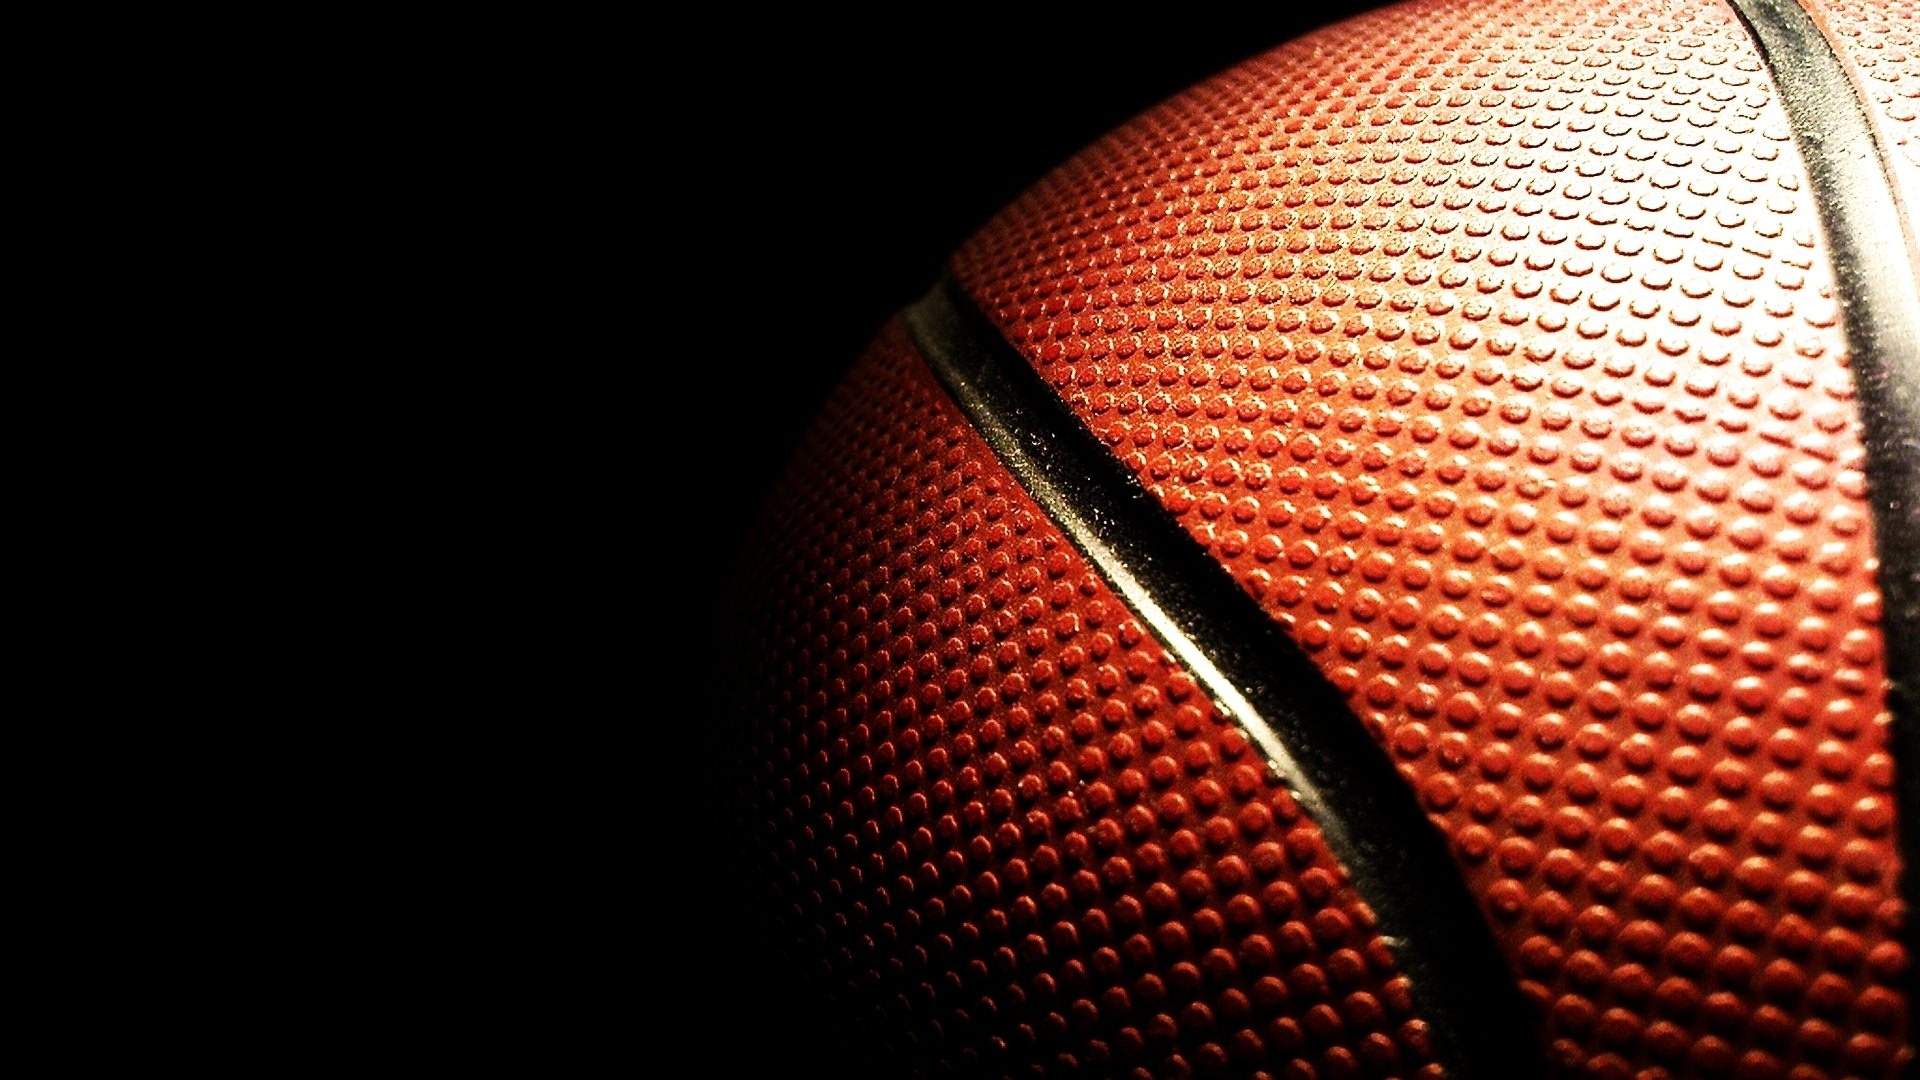 25 basketball wallpapers backgrounds images pictures